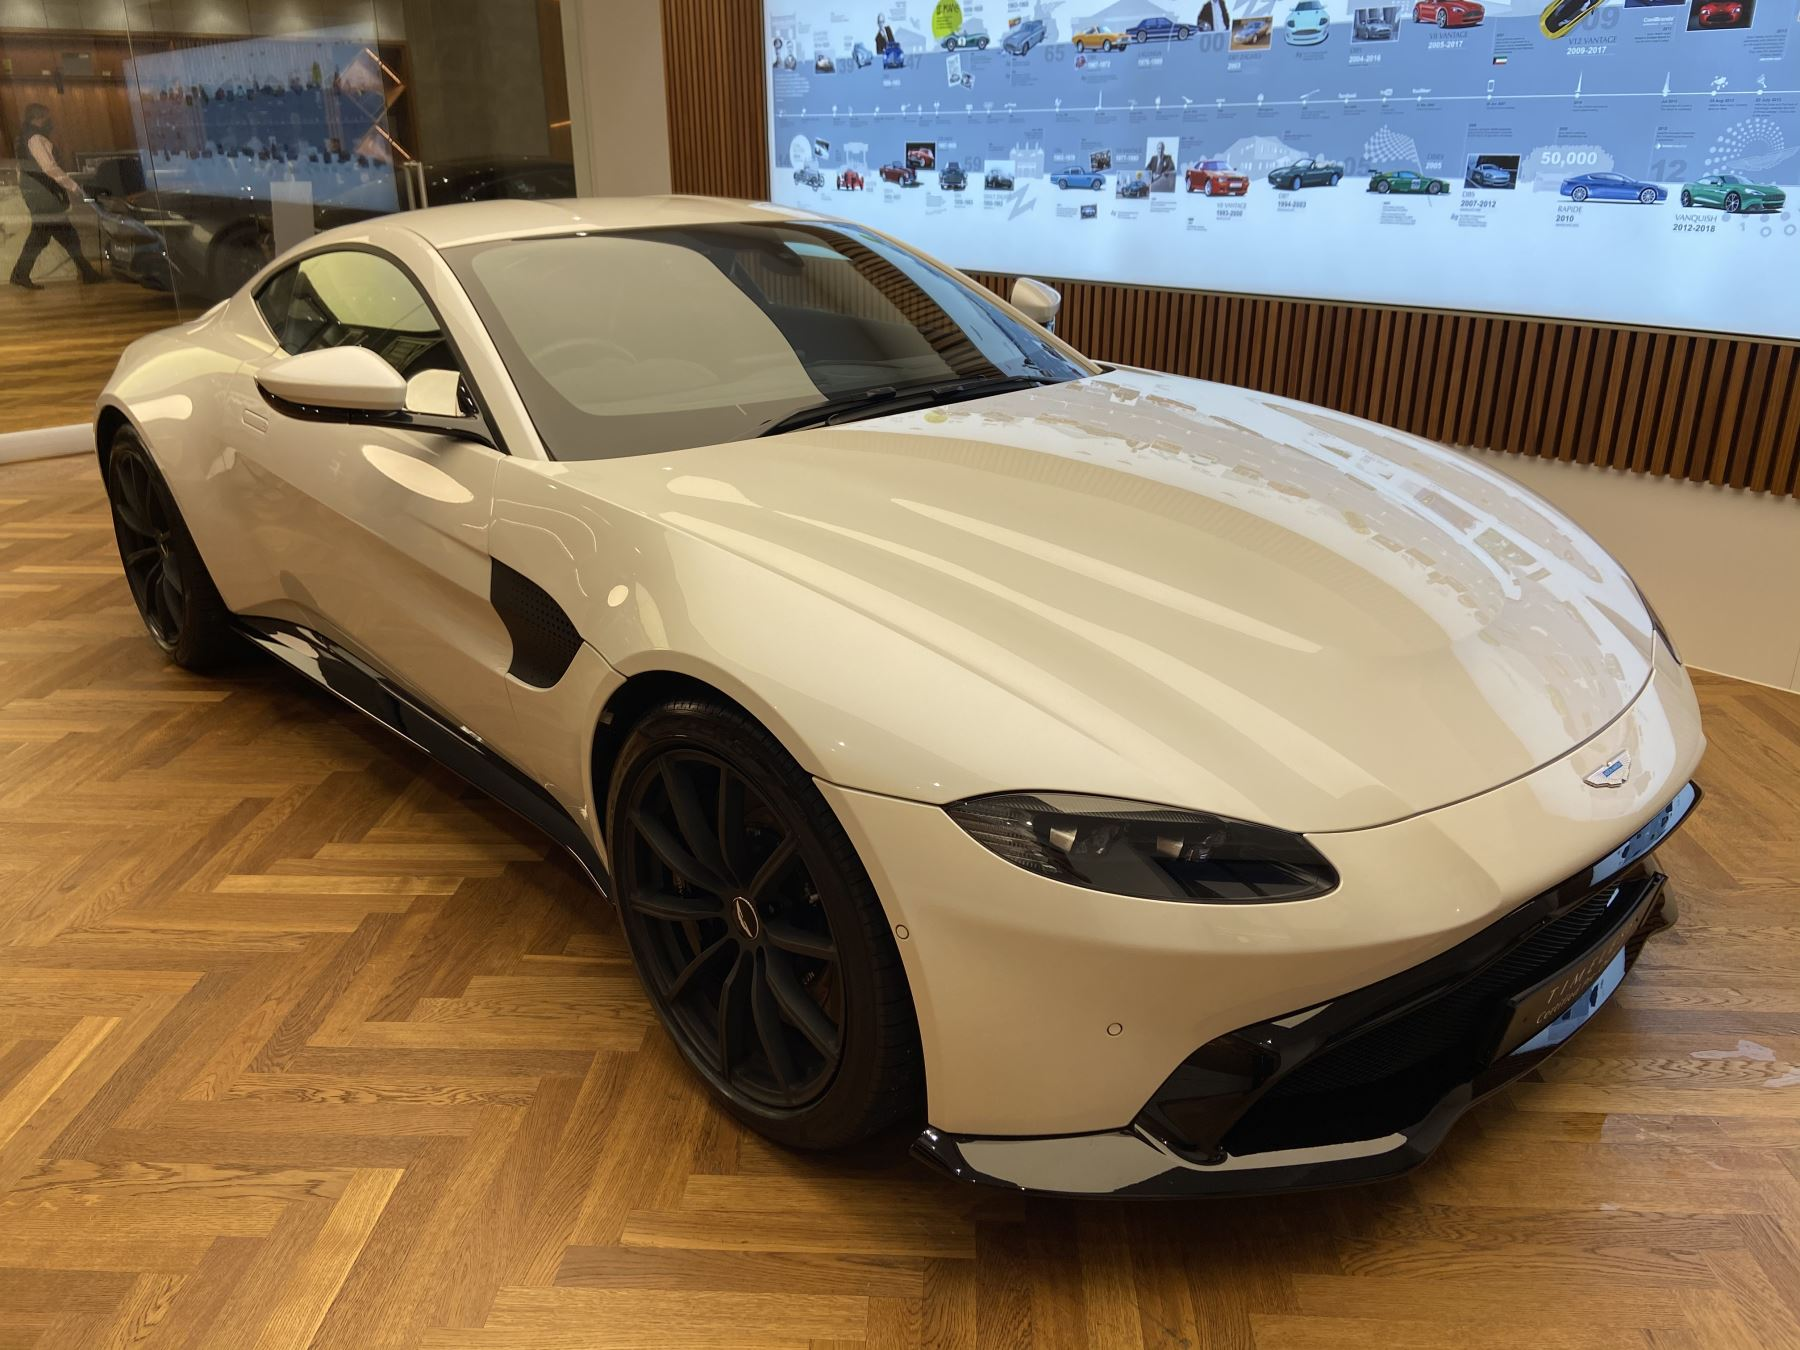 Aston Martin New Vantage 2dr ZF 8 Speed image 2